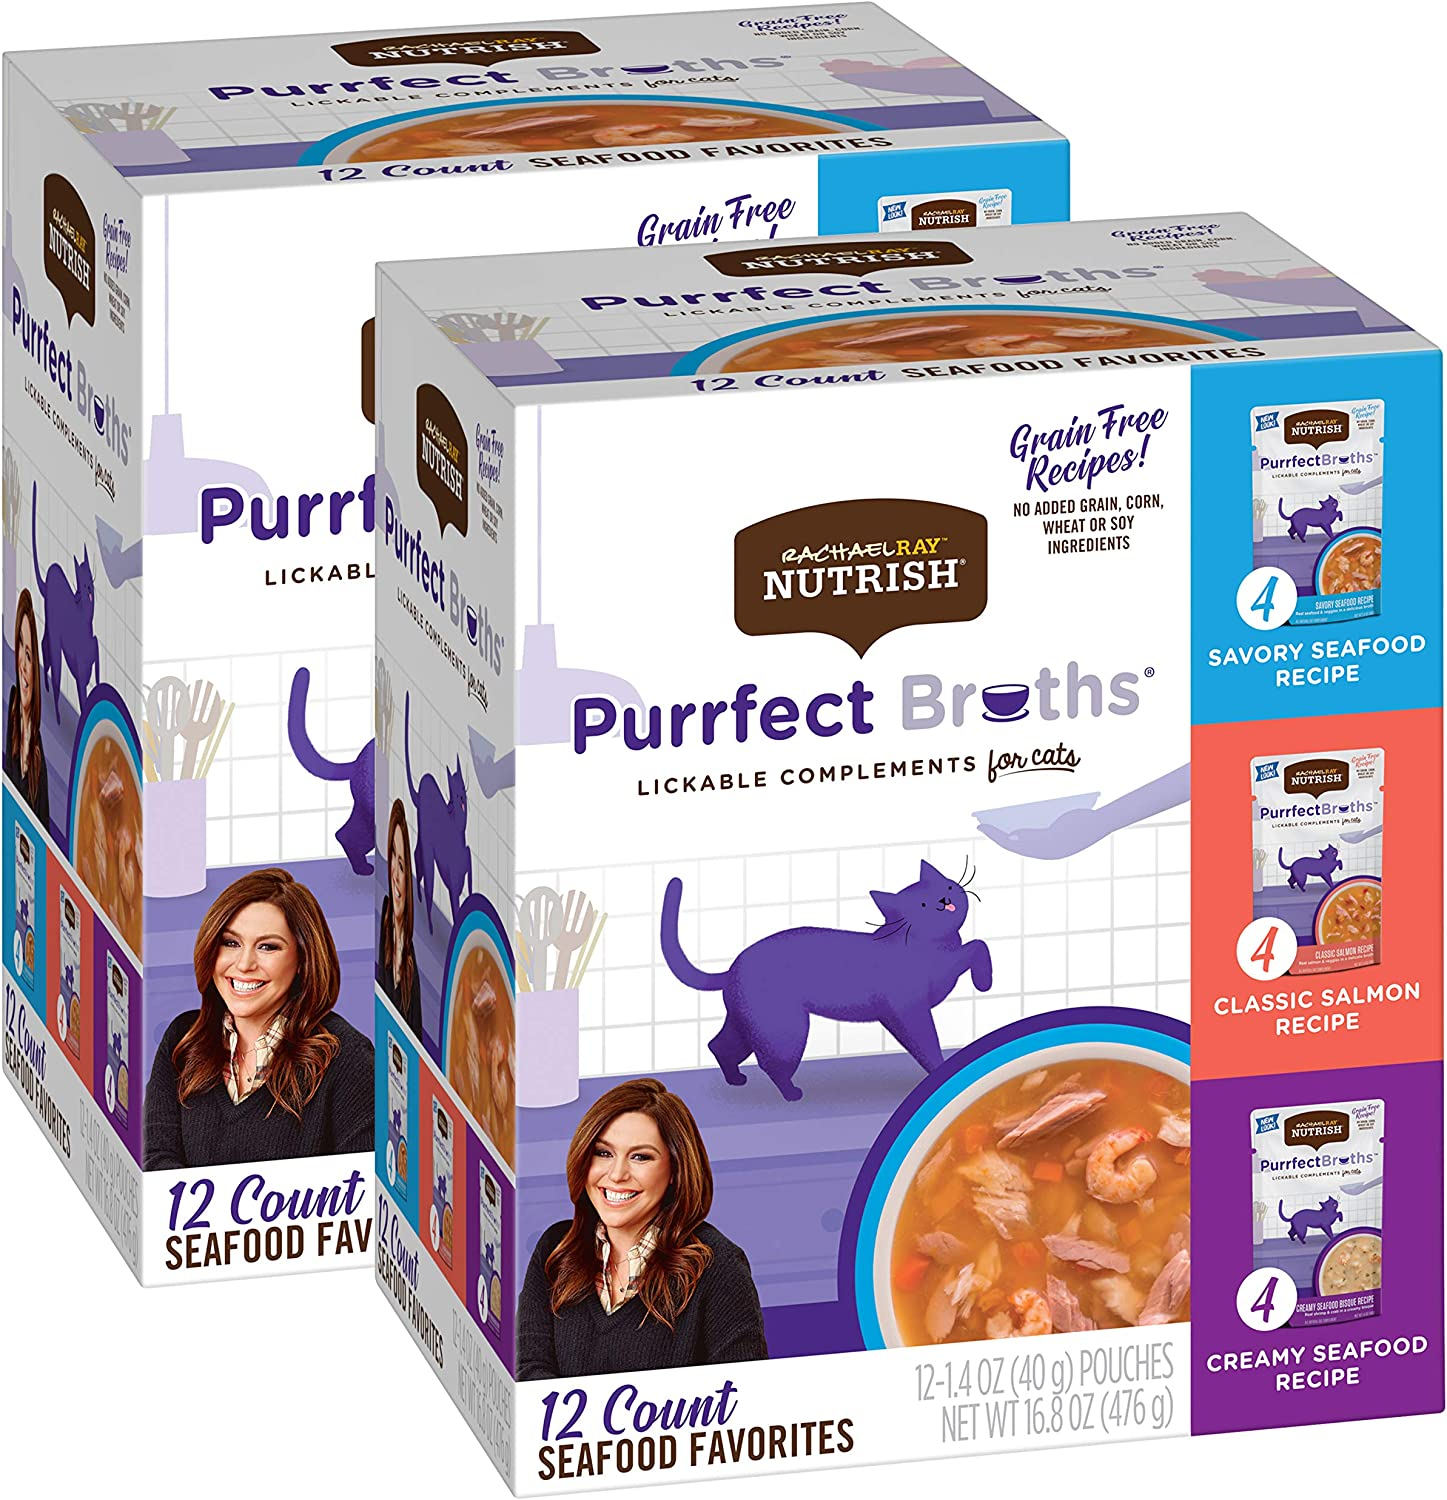 Rachael Ray Nutrish Purrfect Broths Natural Wet Cat Food, Seafood Favorites Variety Pack, 1.4 Ounce Pouch (Pack of 24), Grain Free (Packaging May Vary)